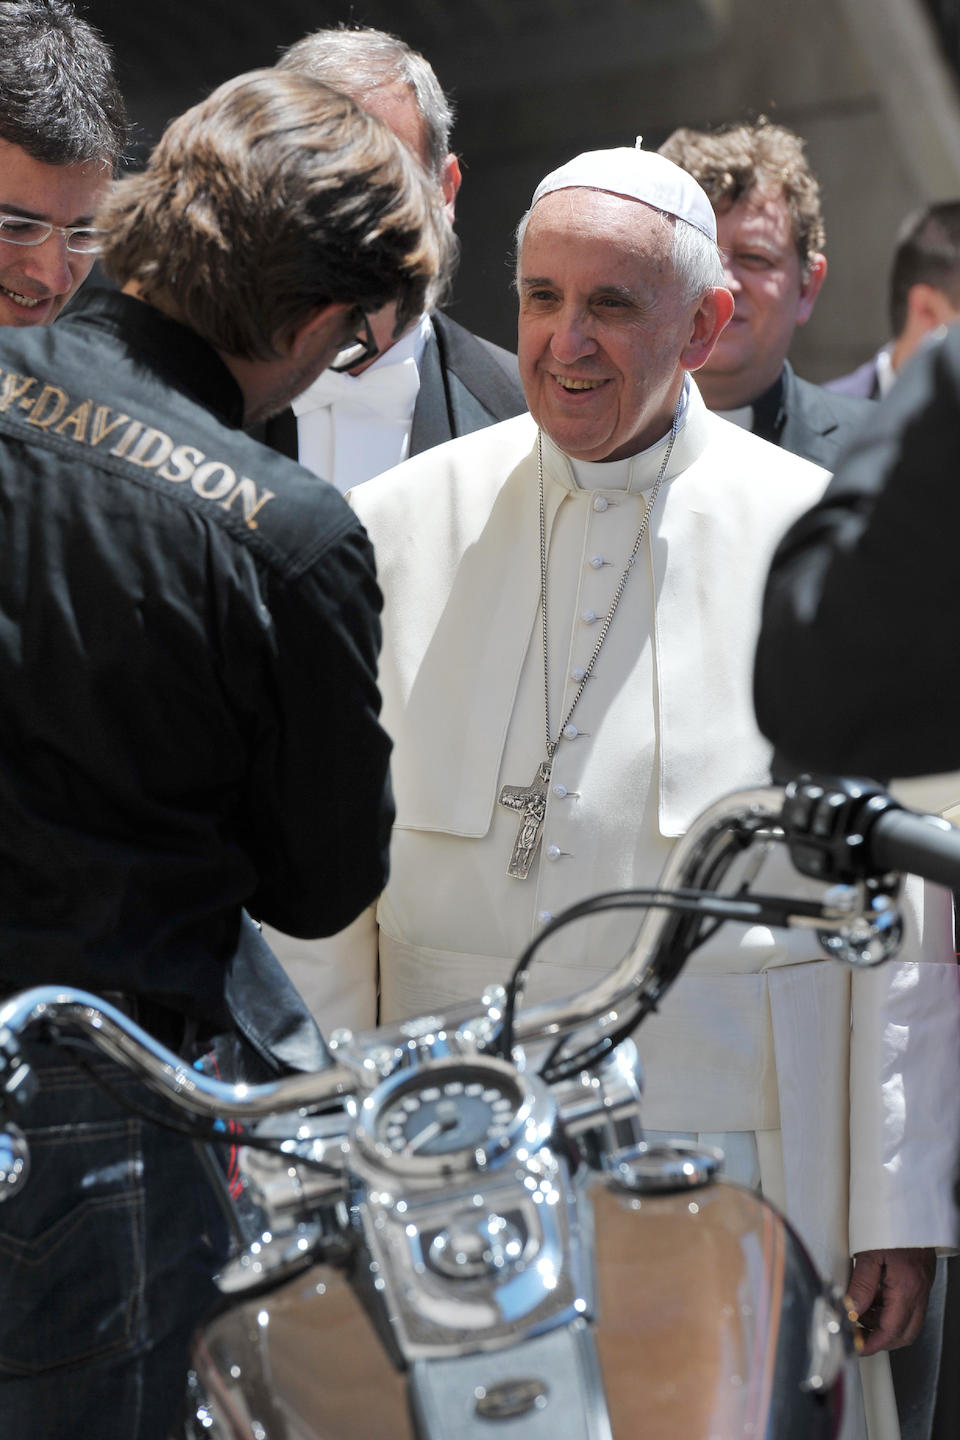 Sold for charity; formerly the property of His Holiness, Pope Francis,,2013 Harley-Davidson 1,585cc FXDC Dyna Super Glide Custom Frame no. 5HD1GV4D3DC306096 Engine no. GV4D306096